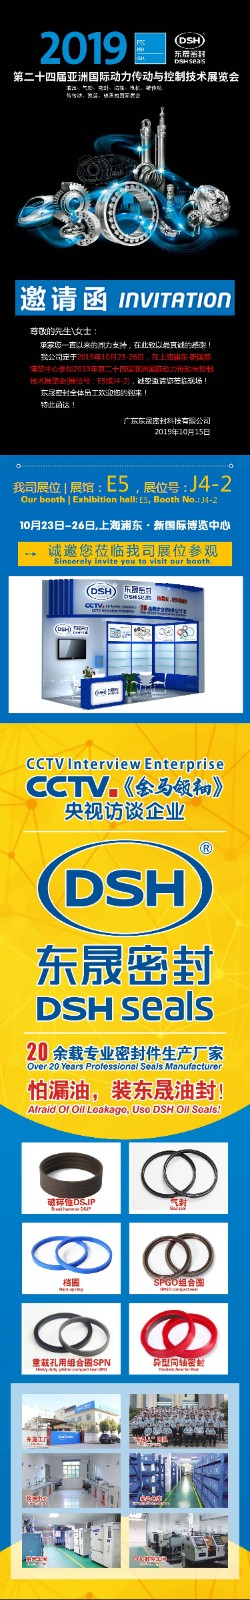 DSH-Welcome You To Visit Our Booth In China Shanghai Pudong New International